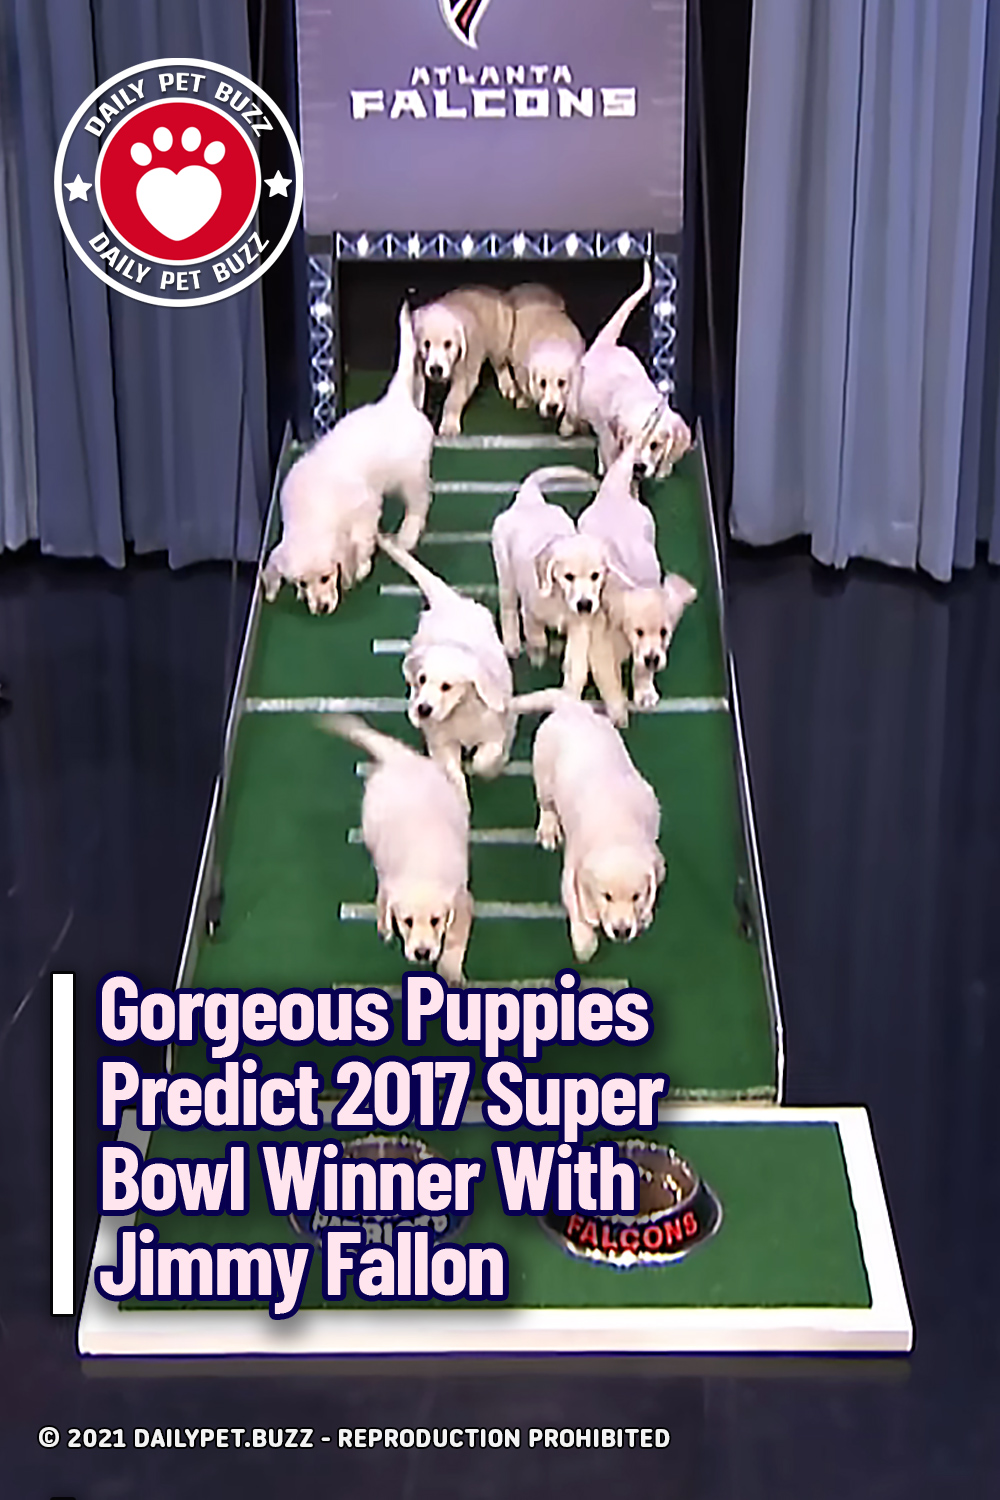 Gorgeous Puppies Predict 2017 Super Bowl Winner With Jimmy Fallon